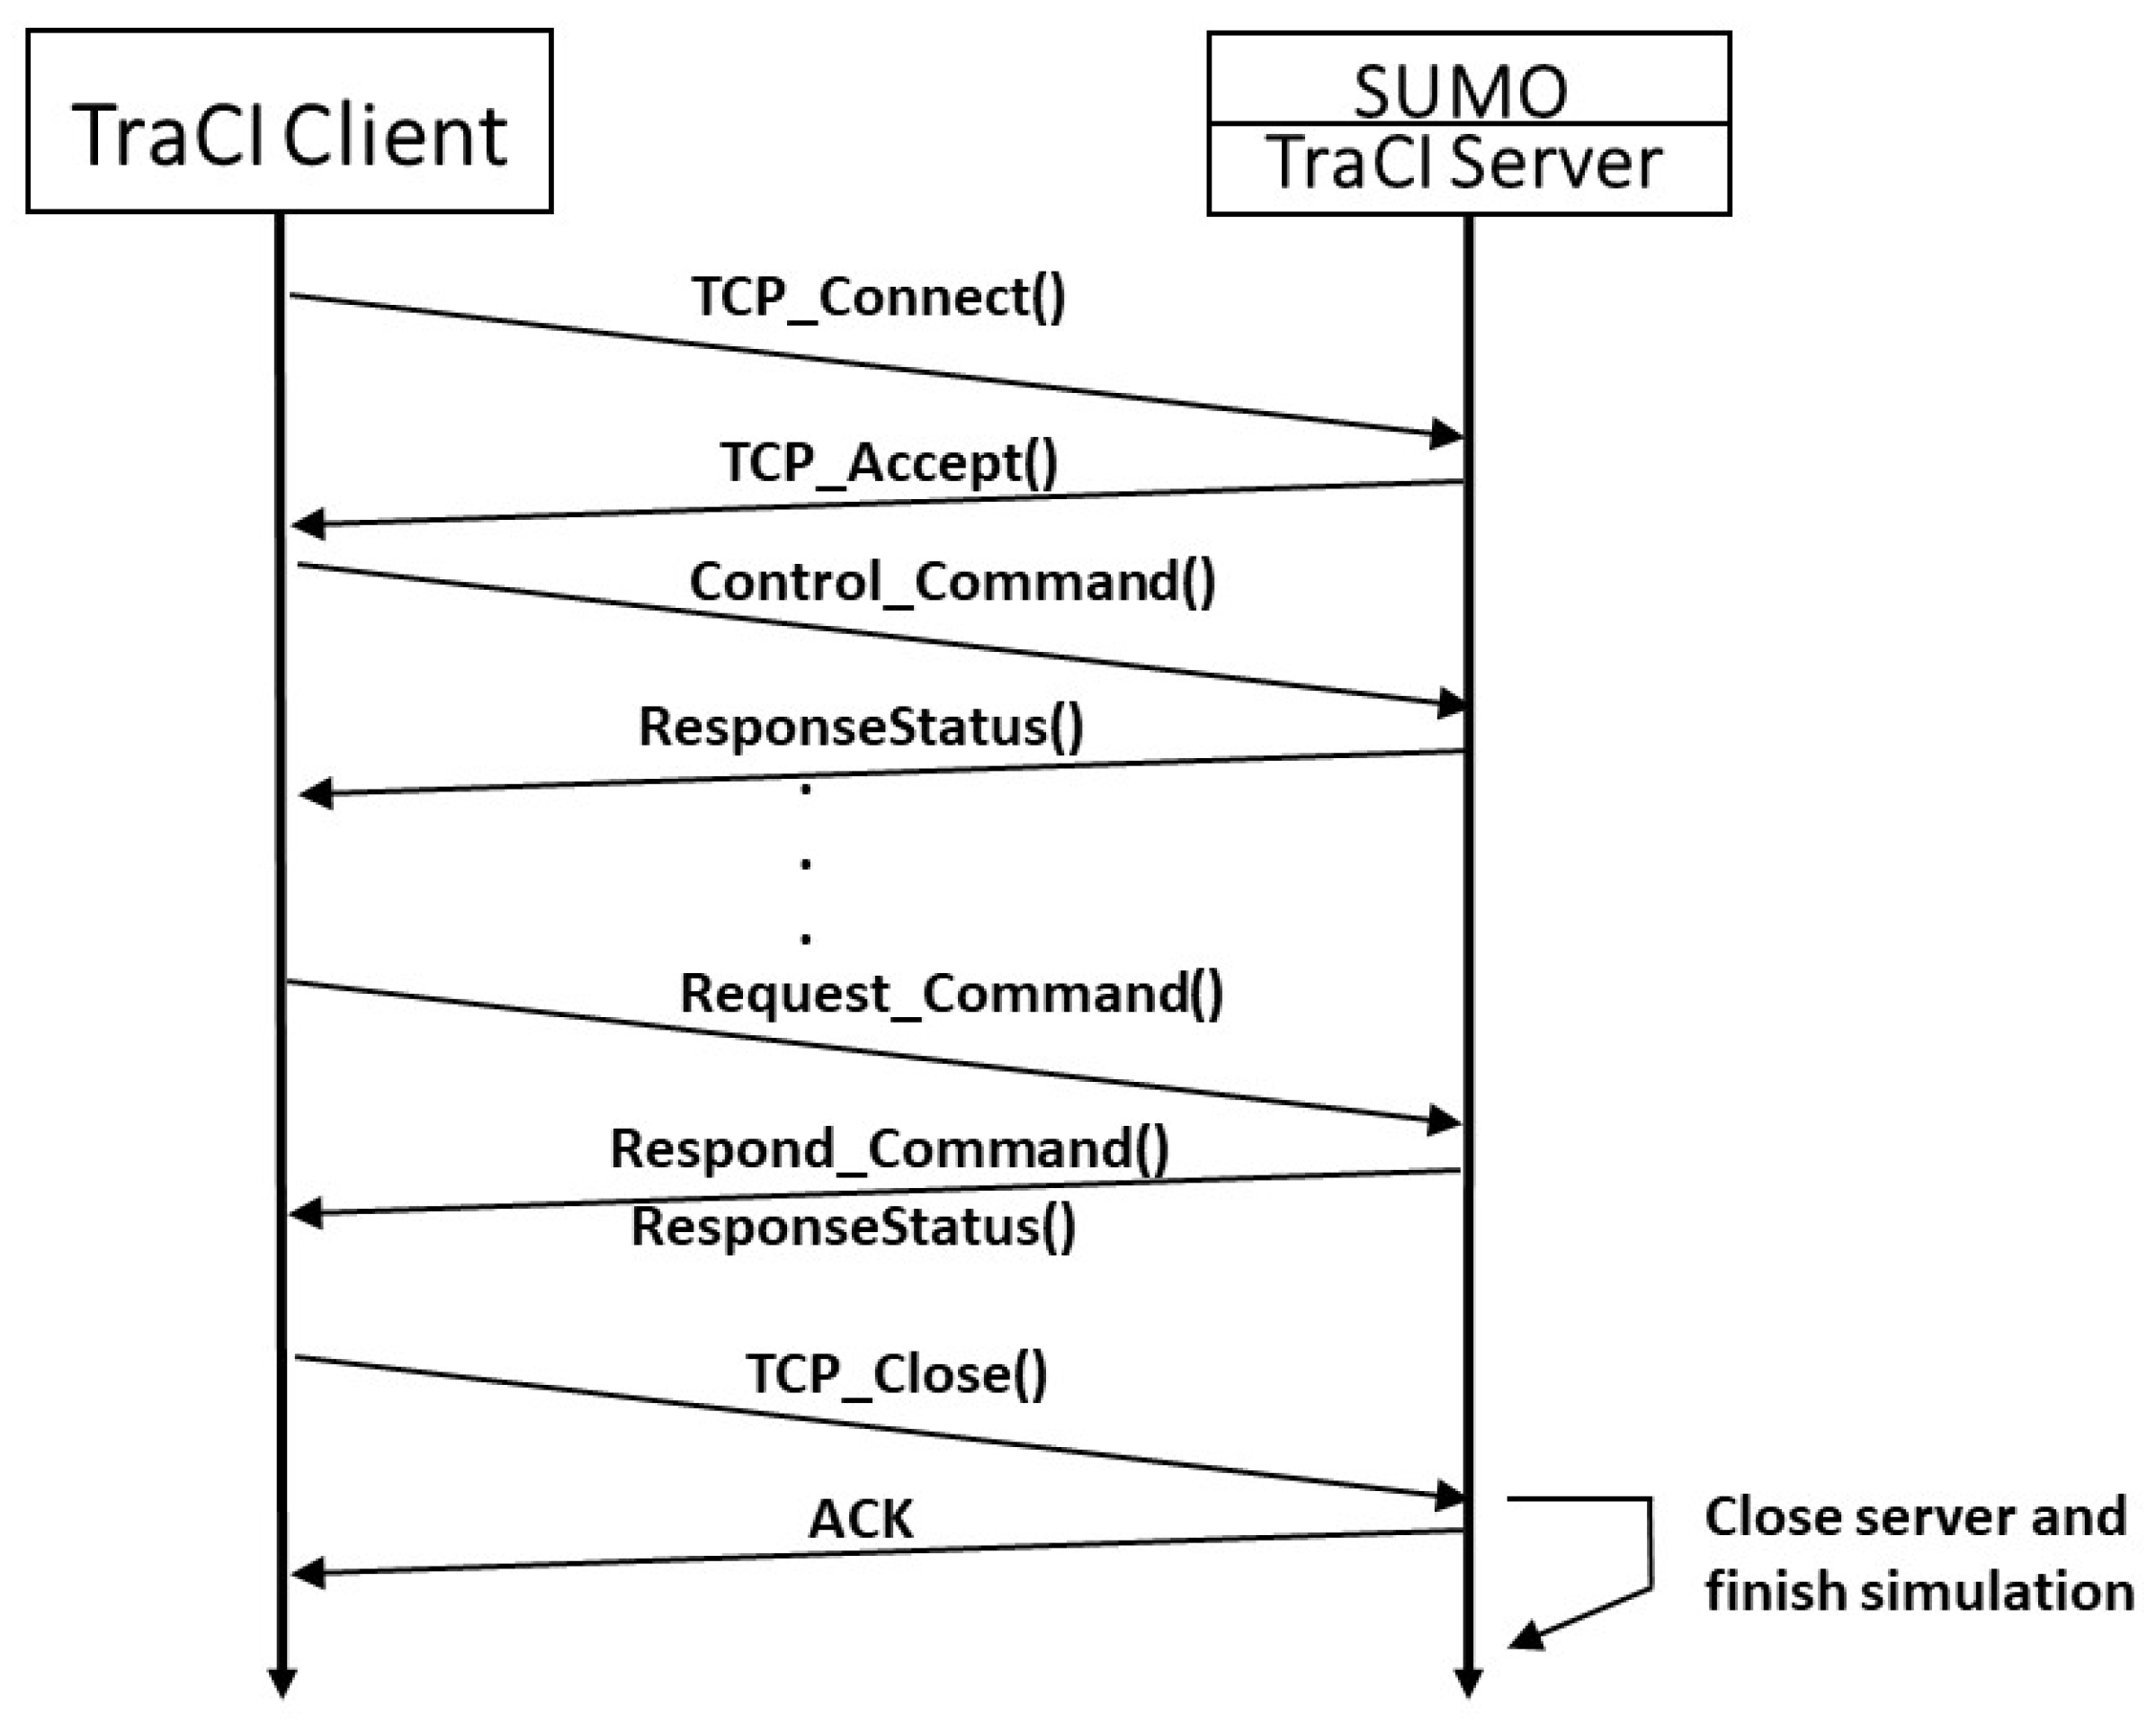 Sensors | Free Full-Text | Connection of the SUMO Microscopic